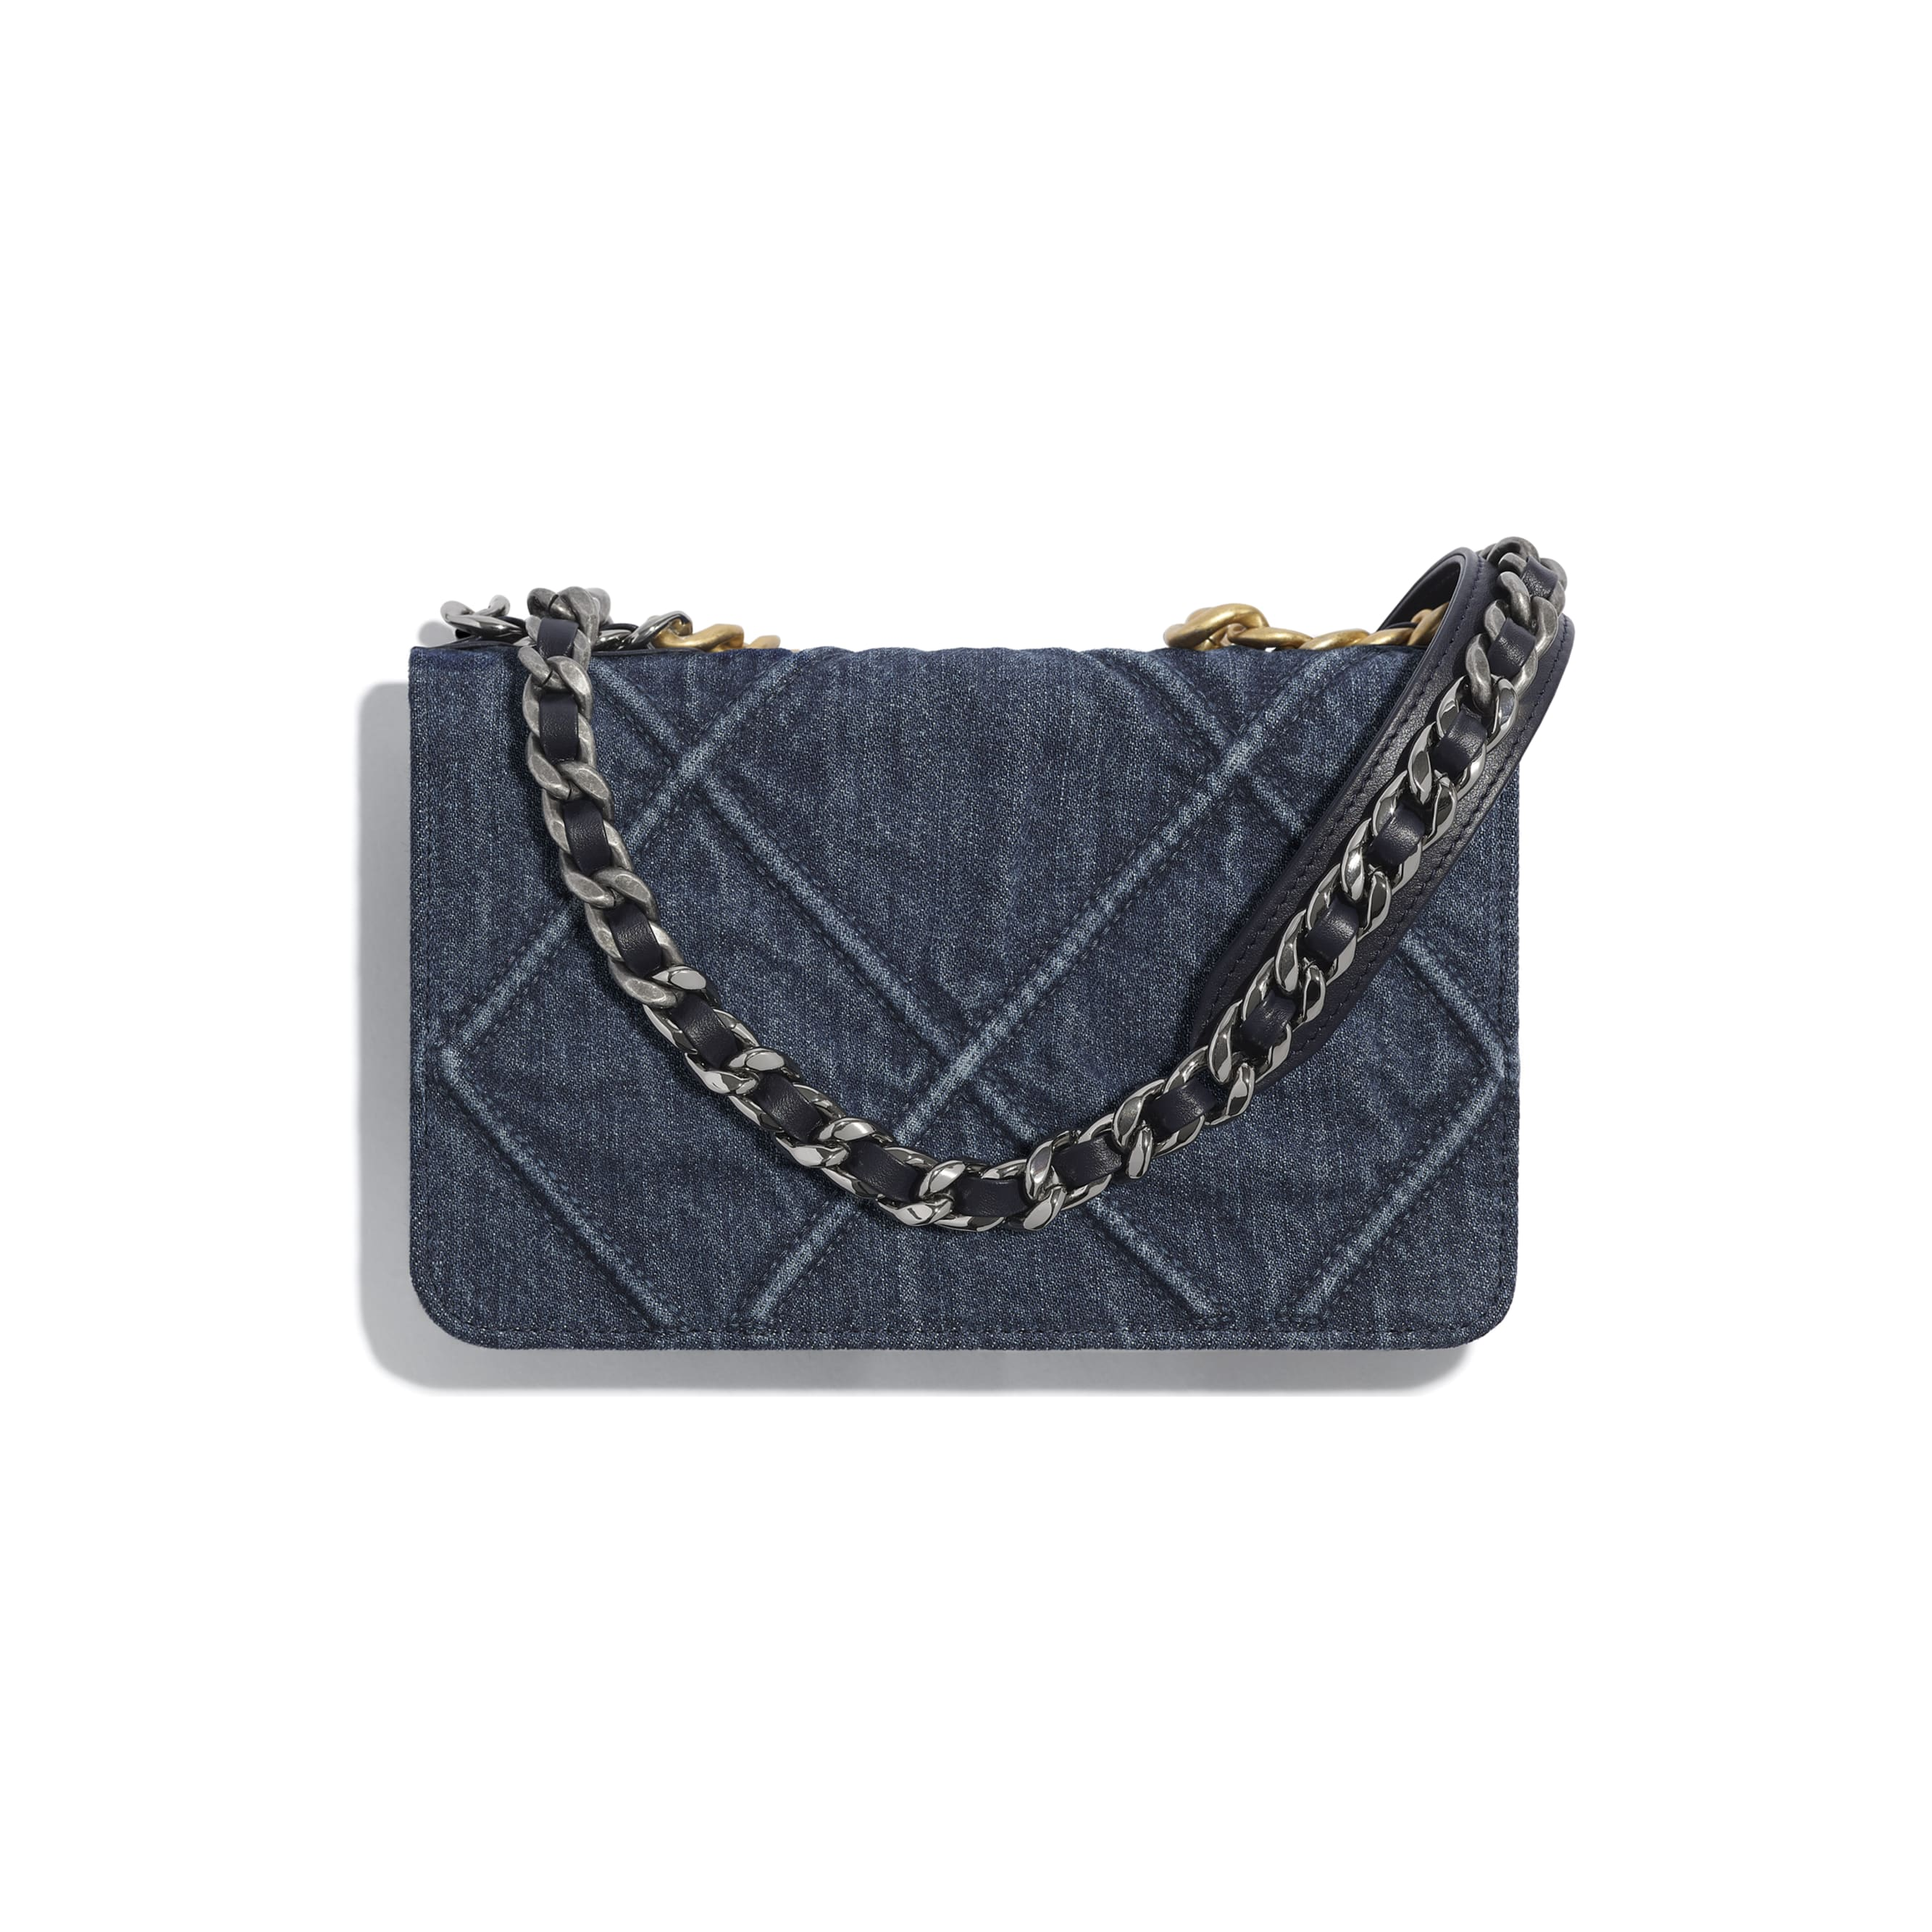 CHANEL 19 Wallet on Chain - Blue - Denim, Gold-Tone, Silver-Tone & Ruthenium-Finish Metal - CHANEL - Alternative view - see standard sized version